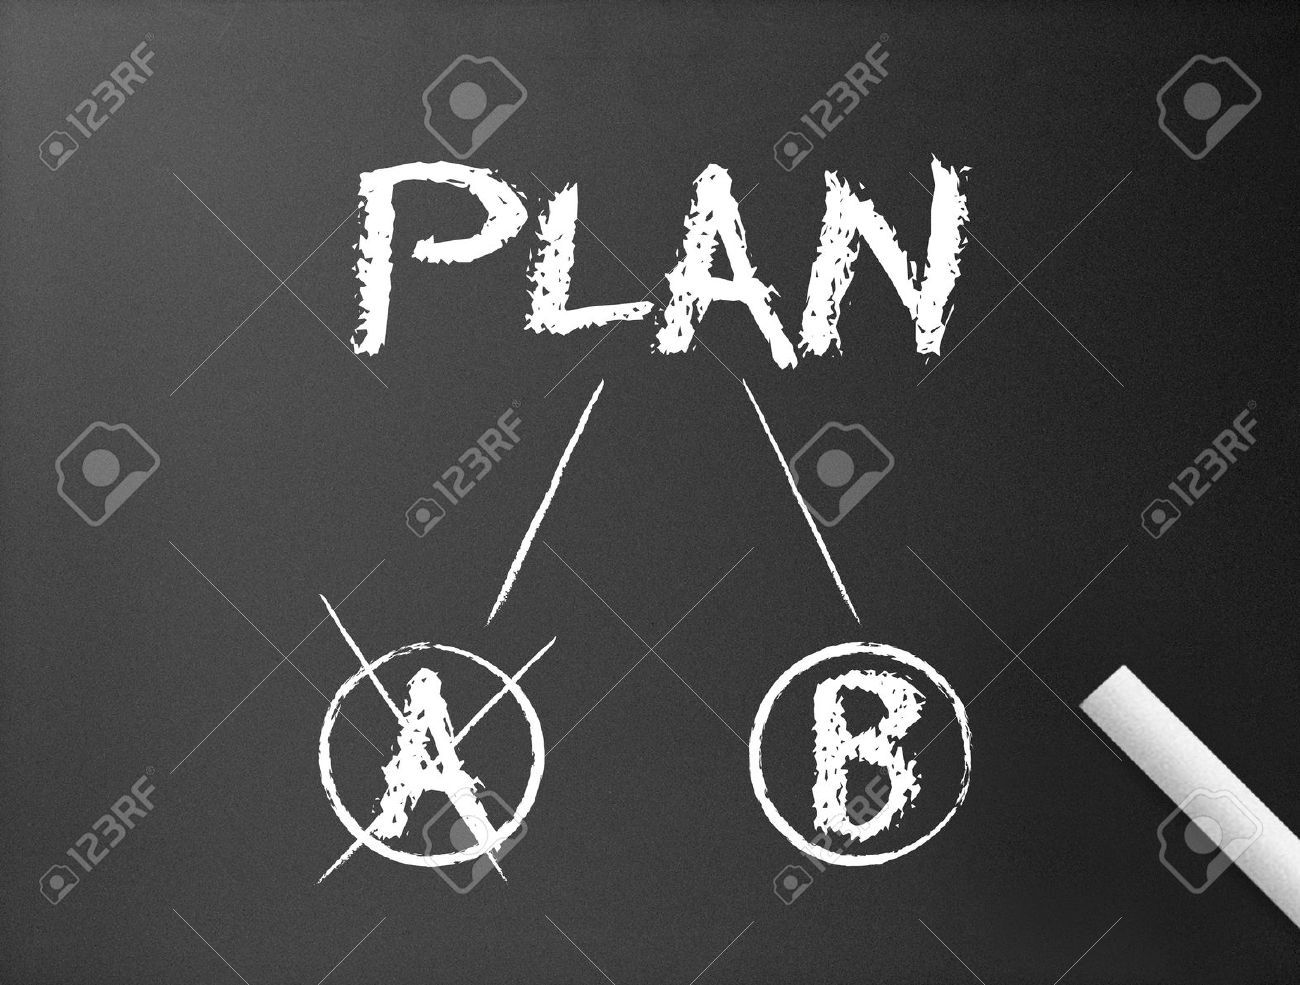 Dark Chalkboard With A Plan A & Plan B Illustration. Stock Photo.